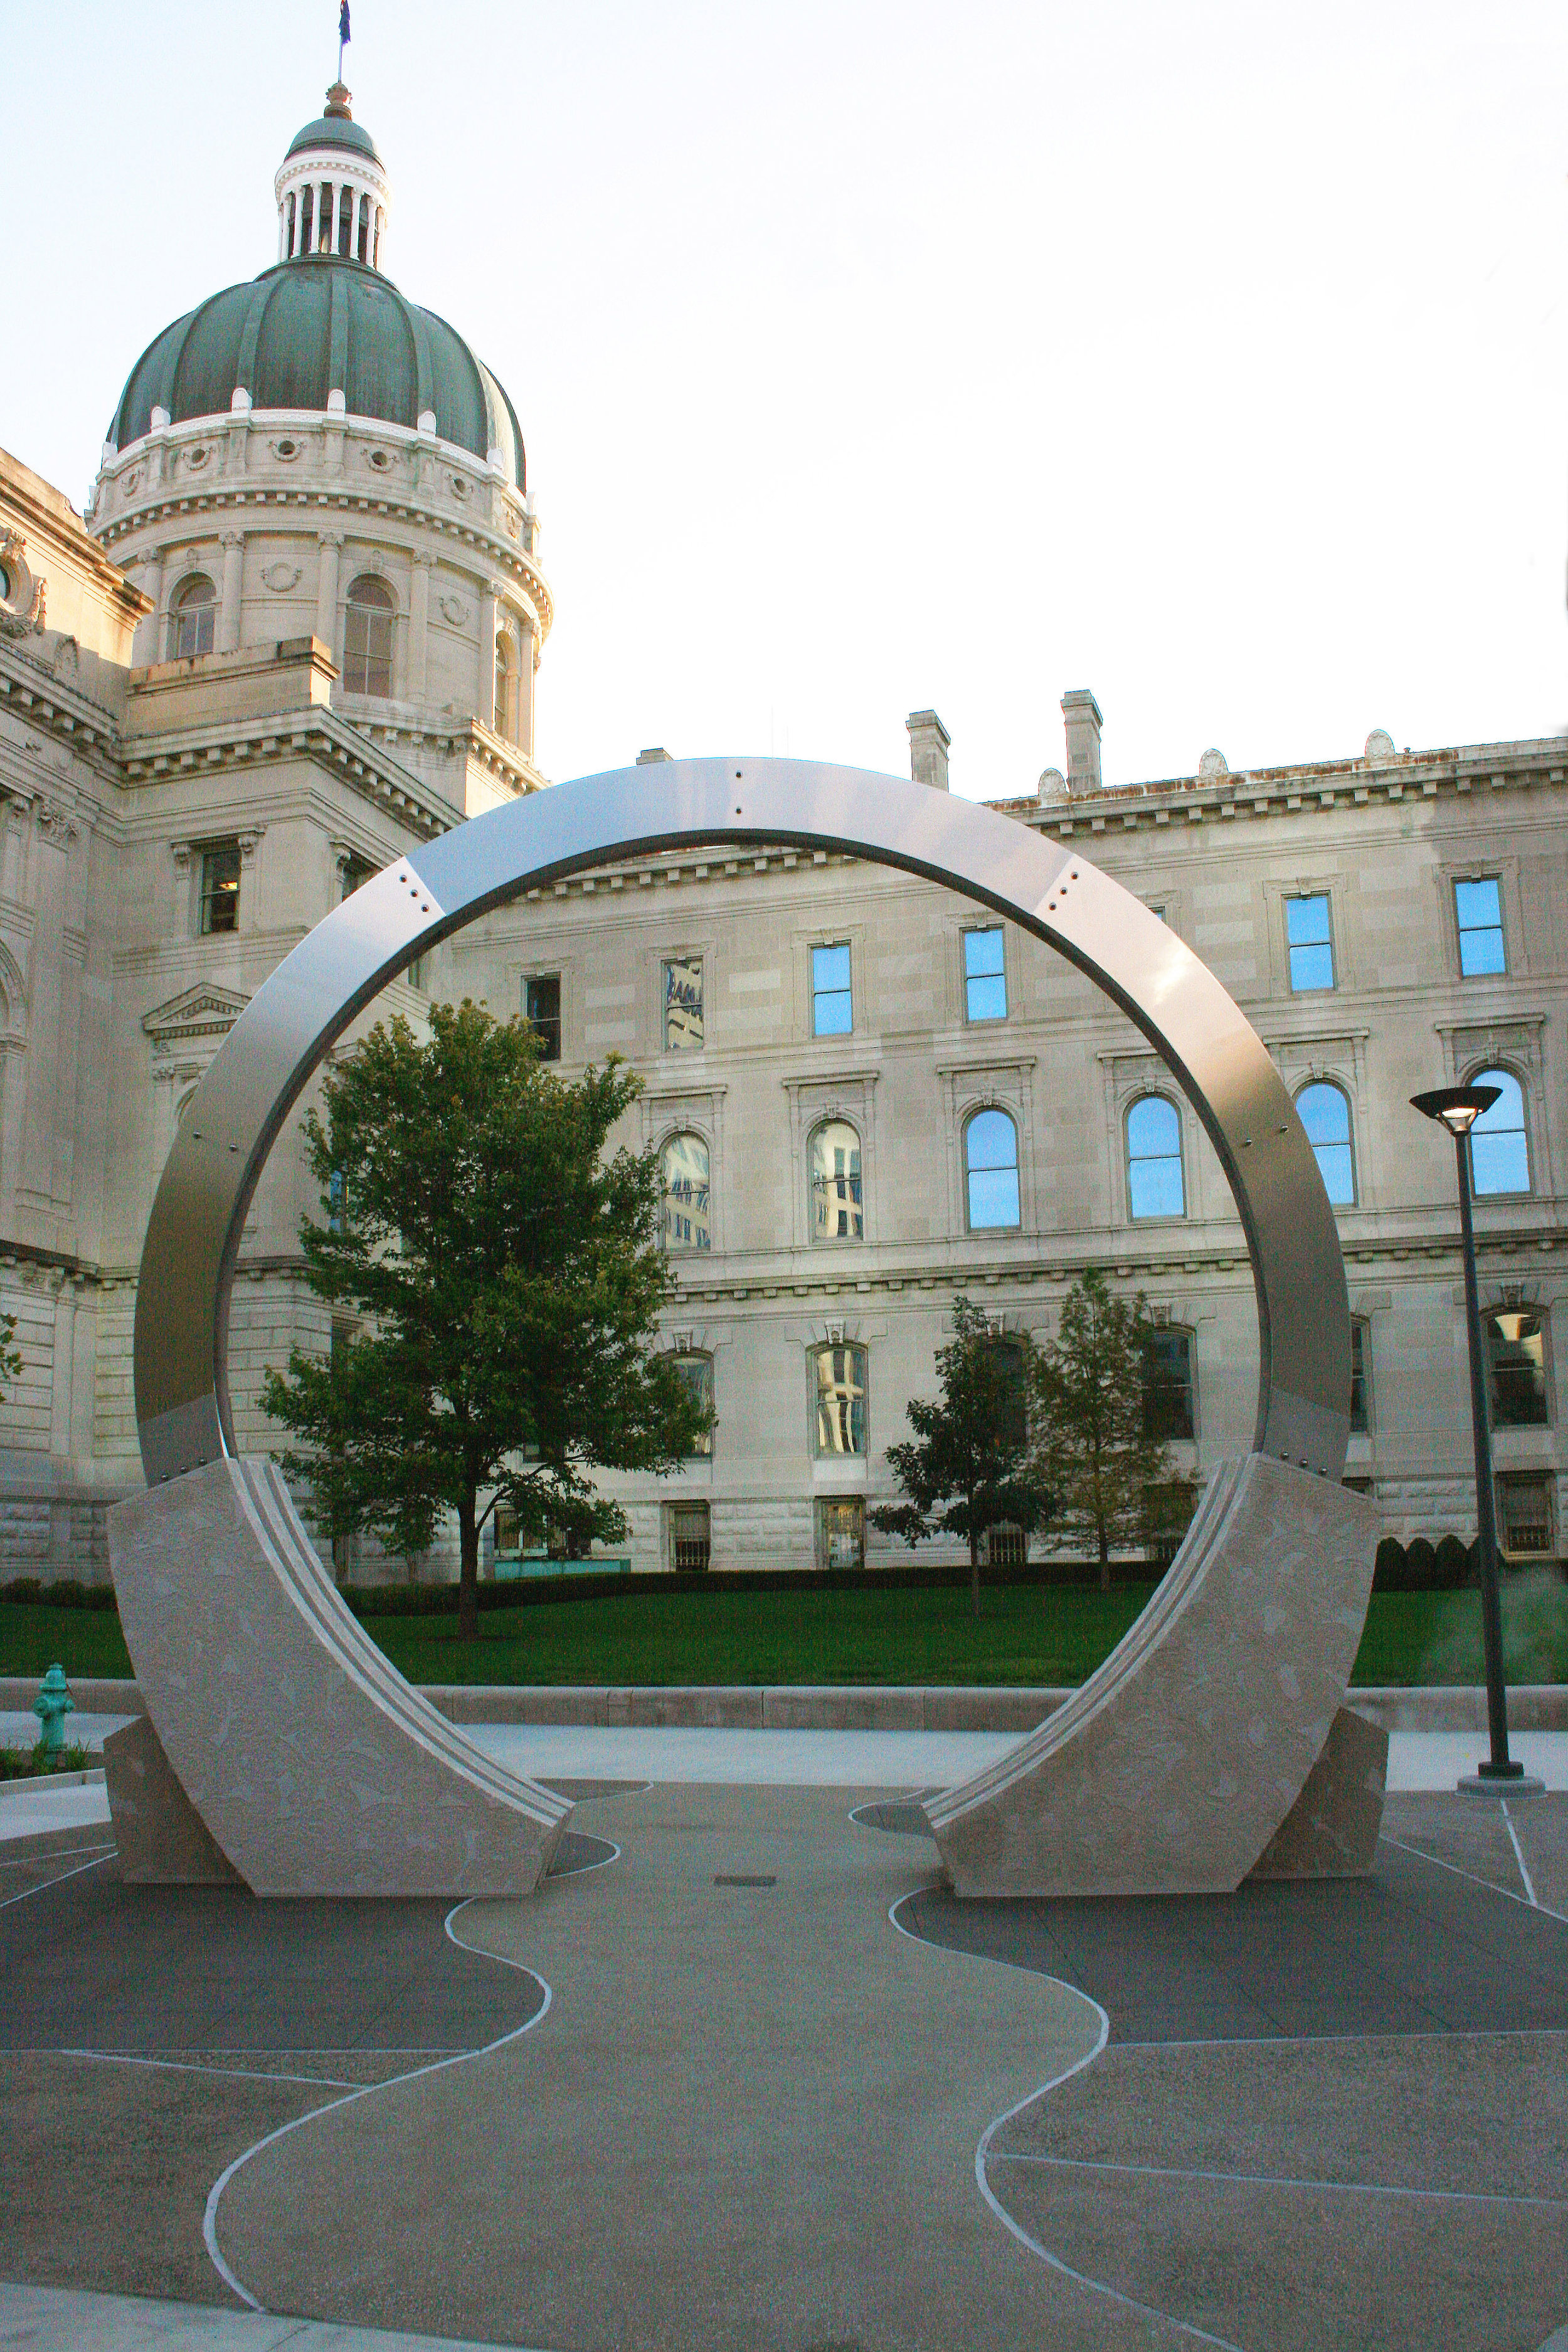 dale enochs' time flow sculpture installed in downtown indianapolis